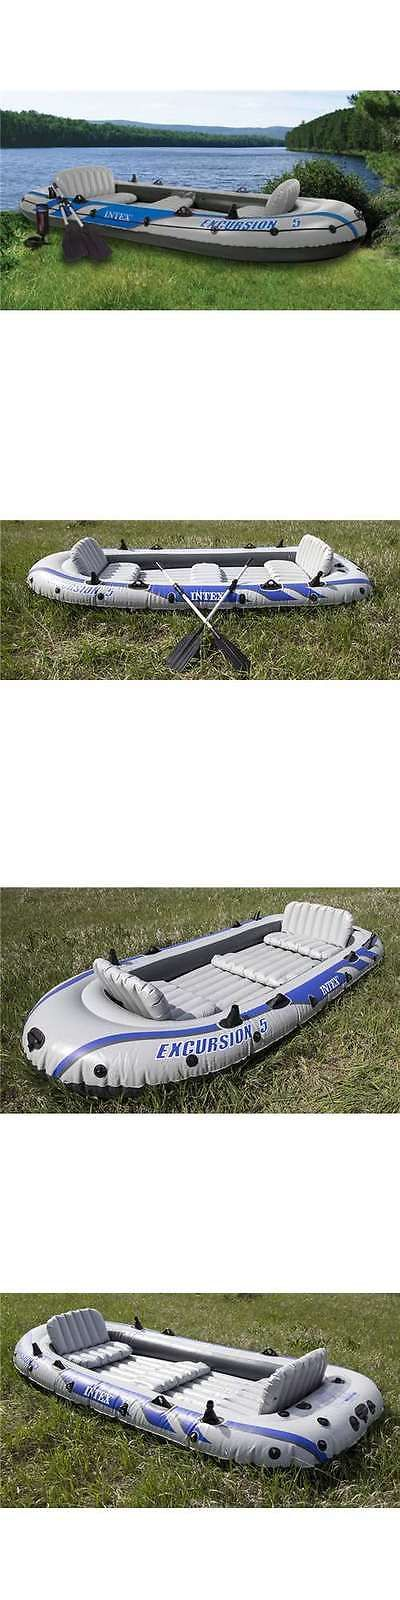 Inflatables 87090: Intex Excursion 5 Inflatable Rafting Fishing Dinghy Boat Set (Open Box) -> BUY IT NOW ONLY: $108.95 on eBay!